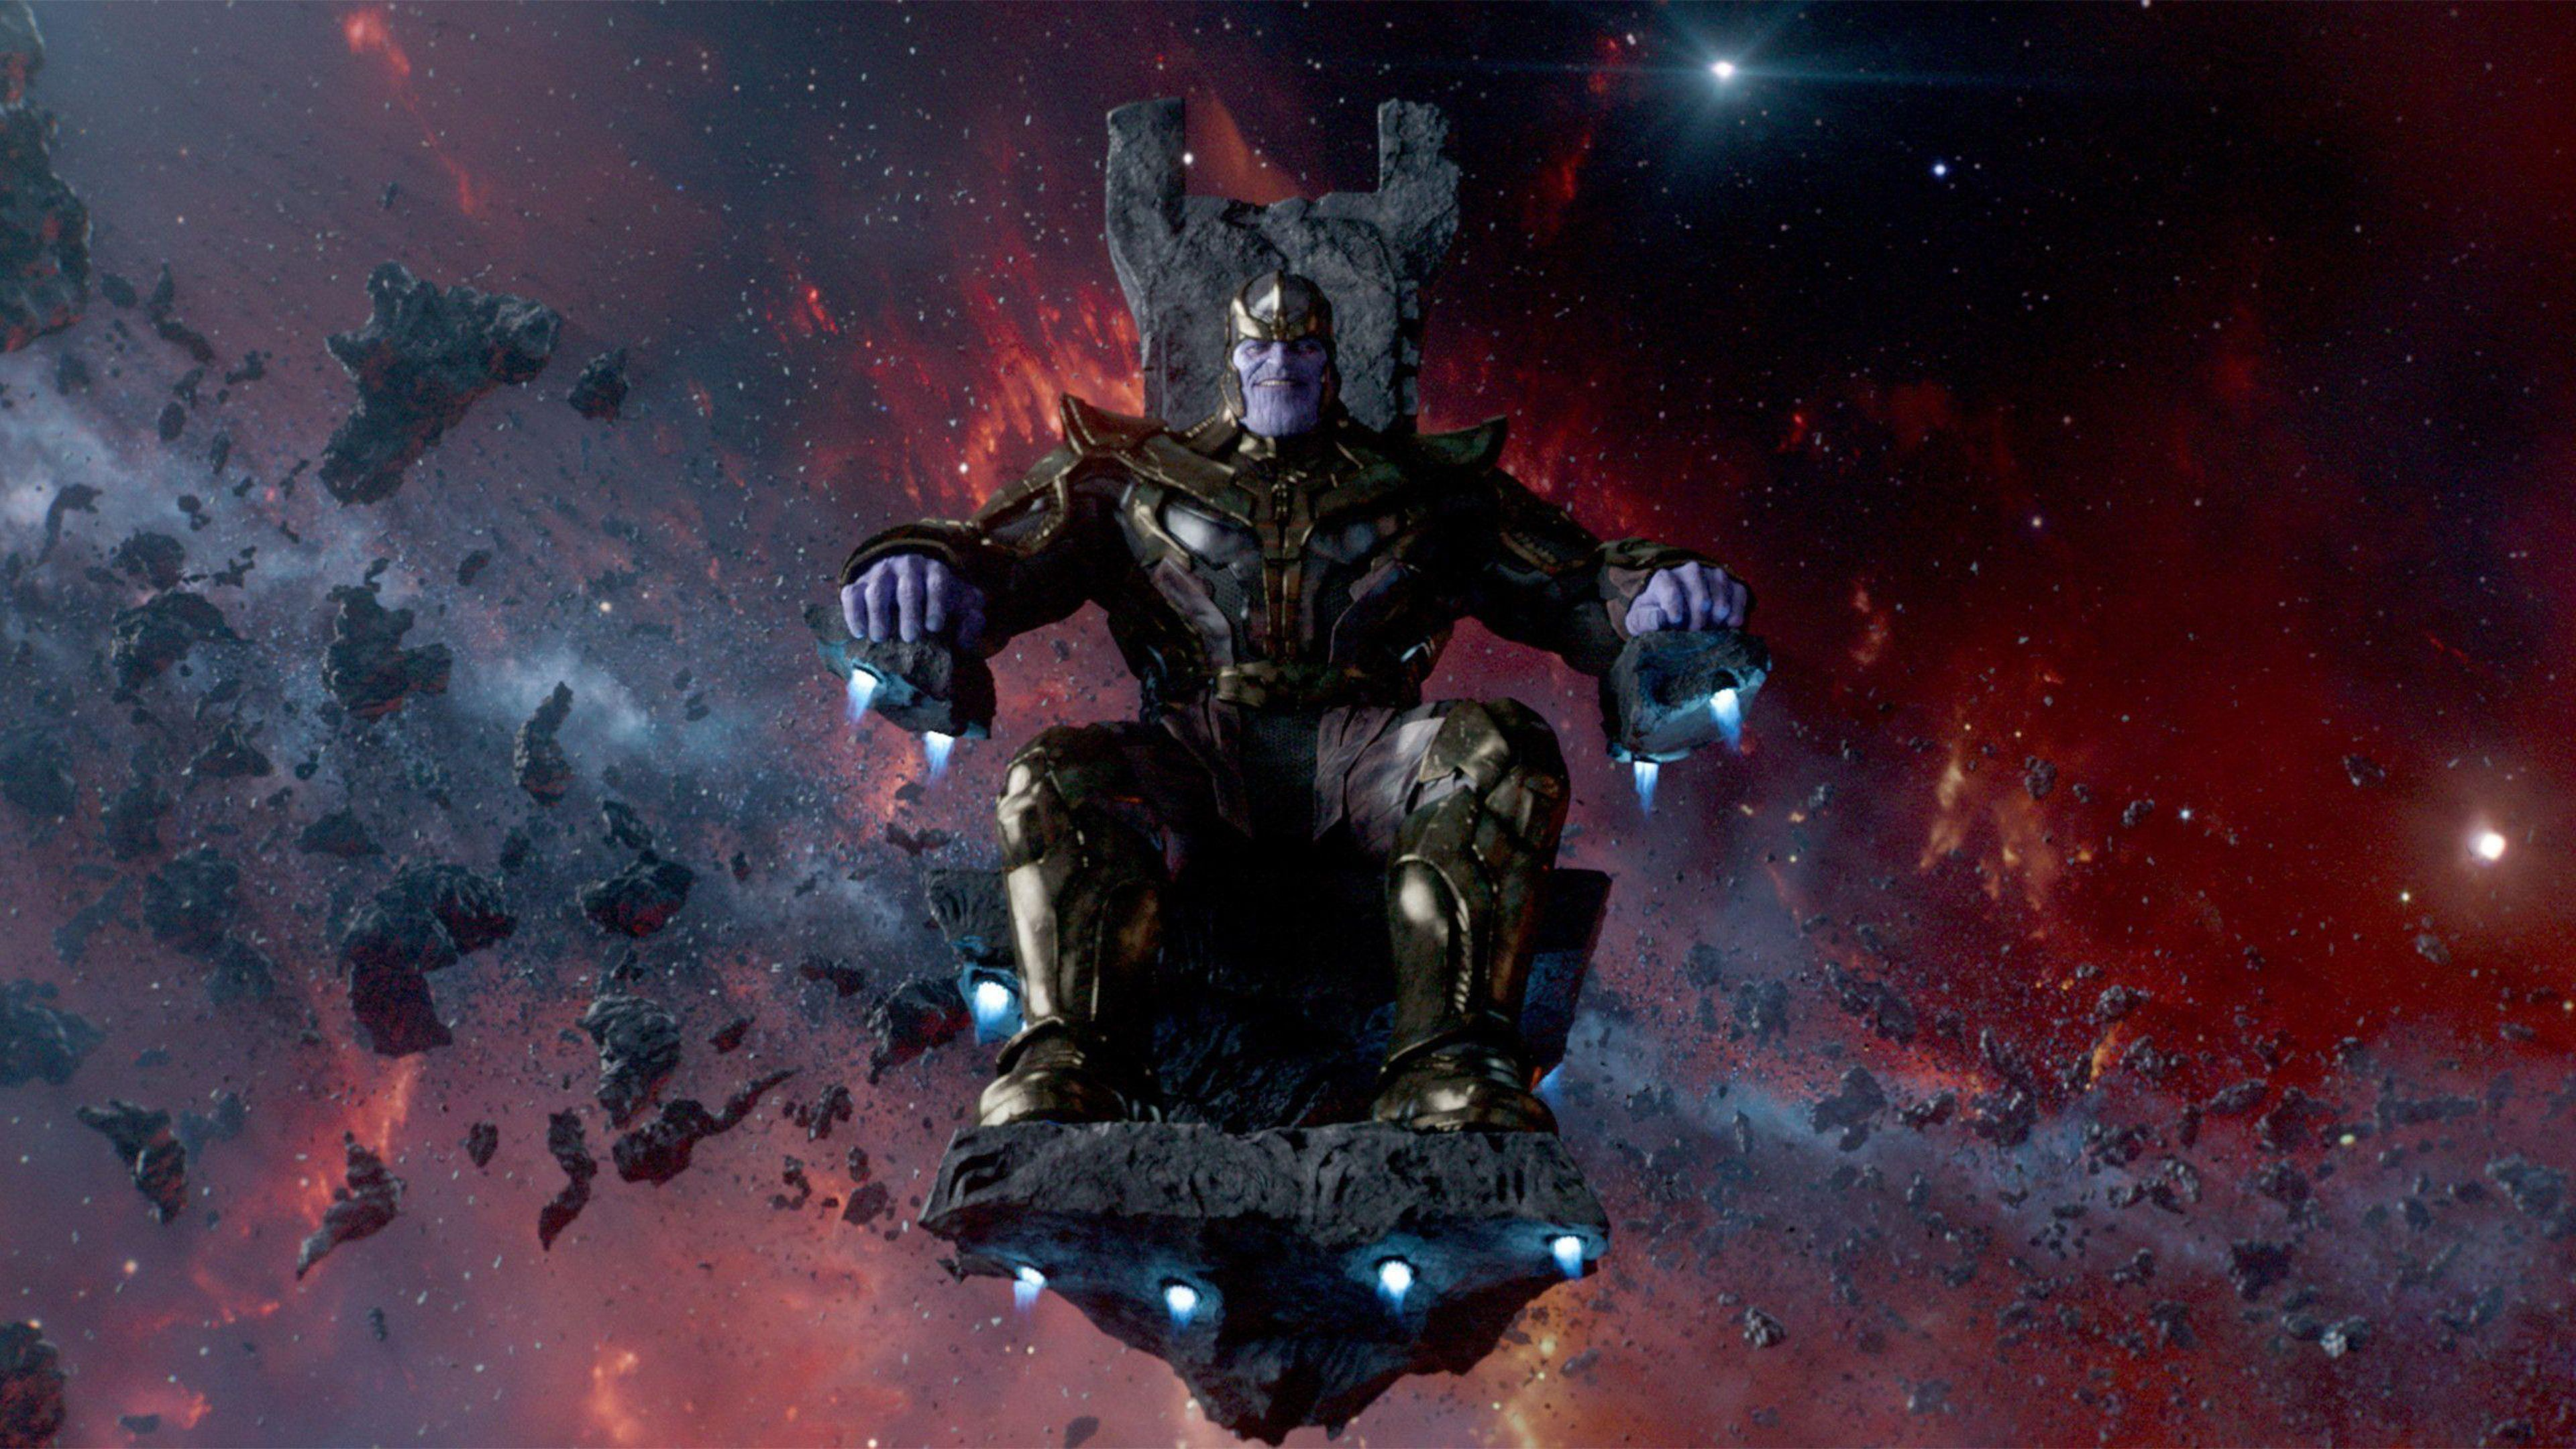 3840x2160 4K UHD 16:9 Darkness, Space, Thanos Wallpaper : Movies Wallpaper for ...